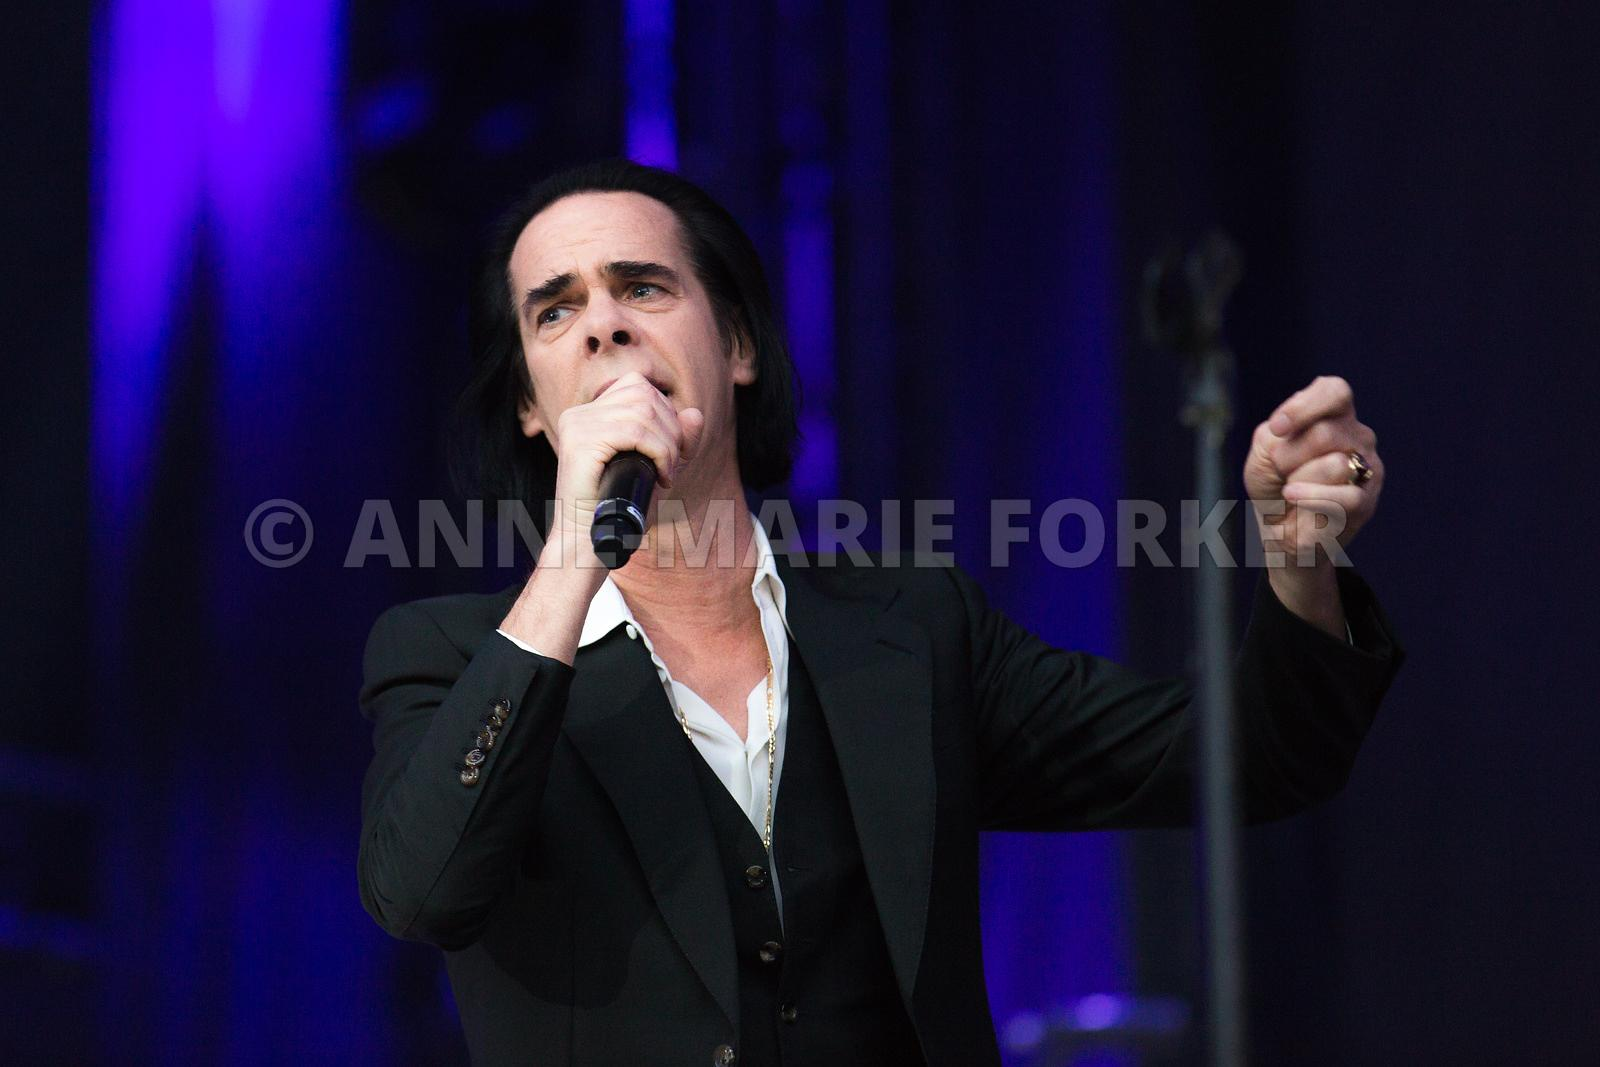 Nick_Cave_-_AM_Forker-8439